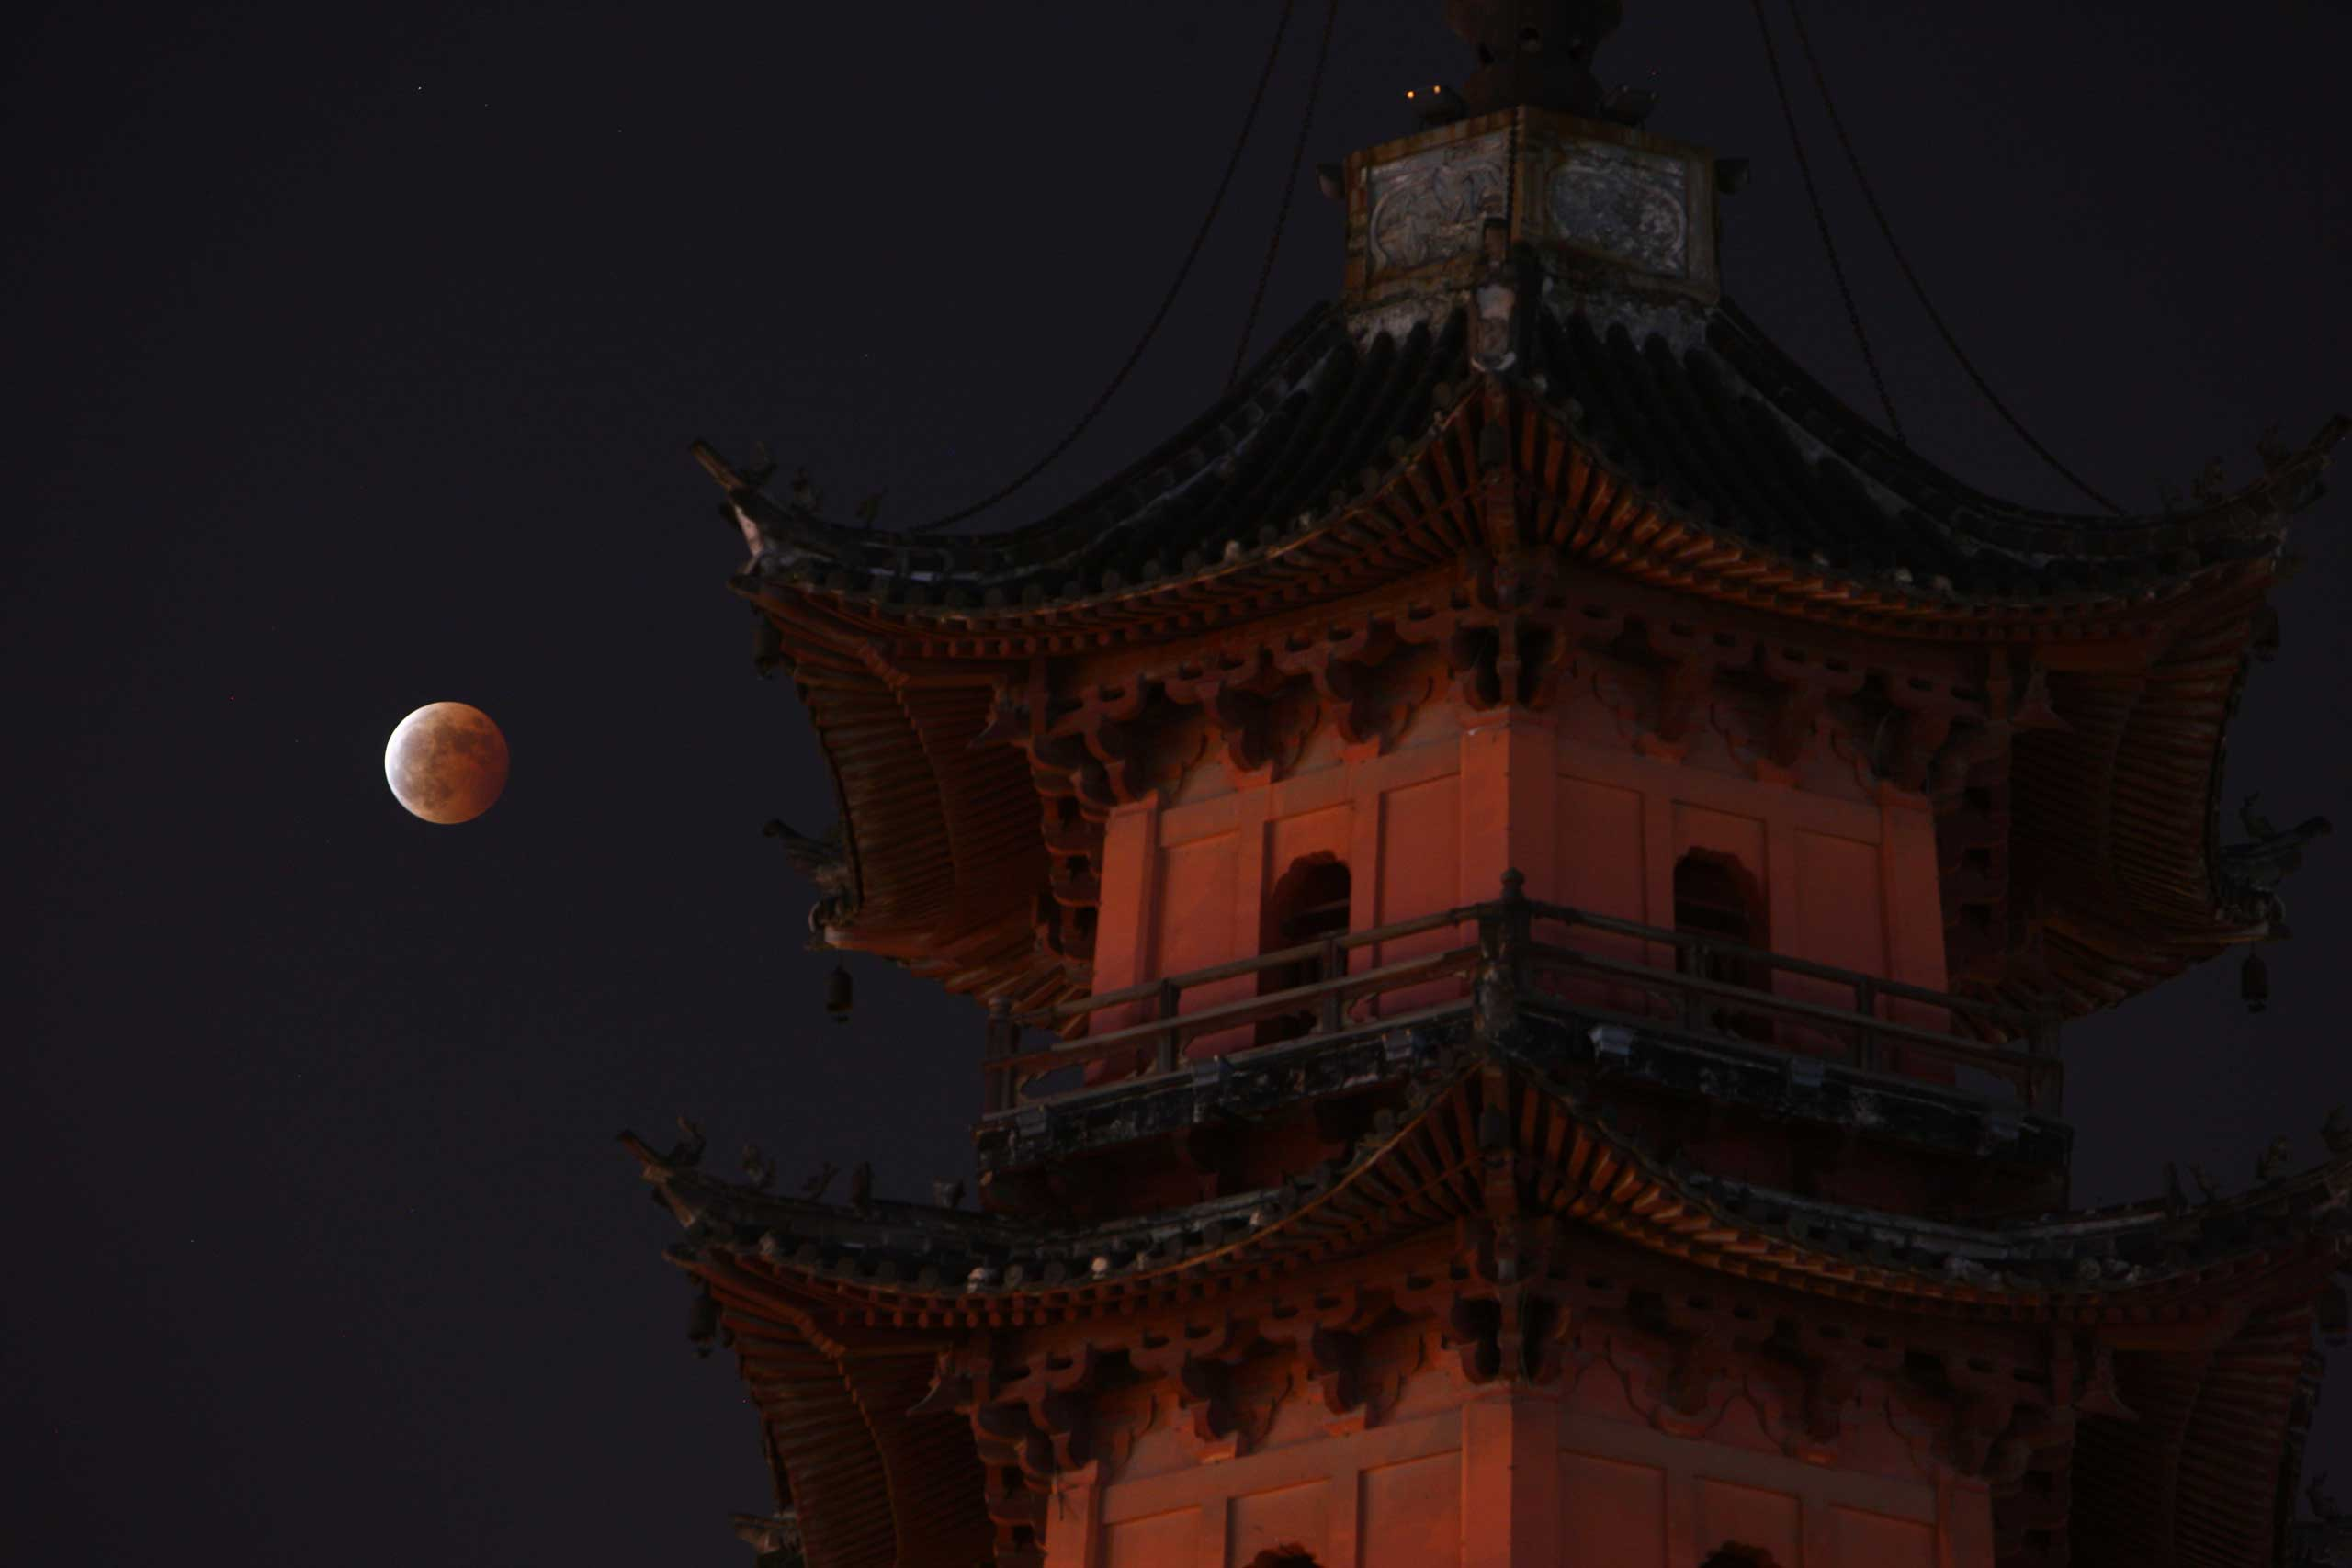 The blood moon resulting from the total lunar eclipse is seen in the sky in Ningbo city, China on Oct. 8, 2014.